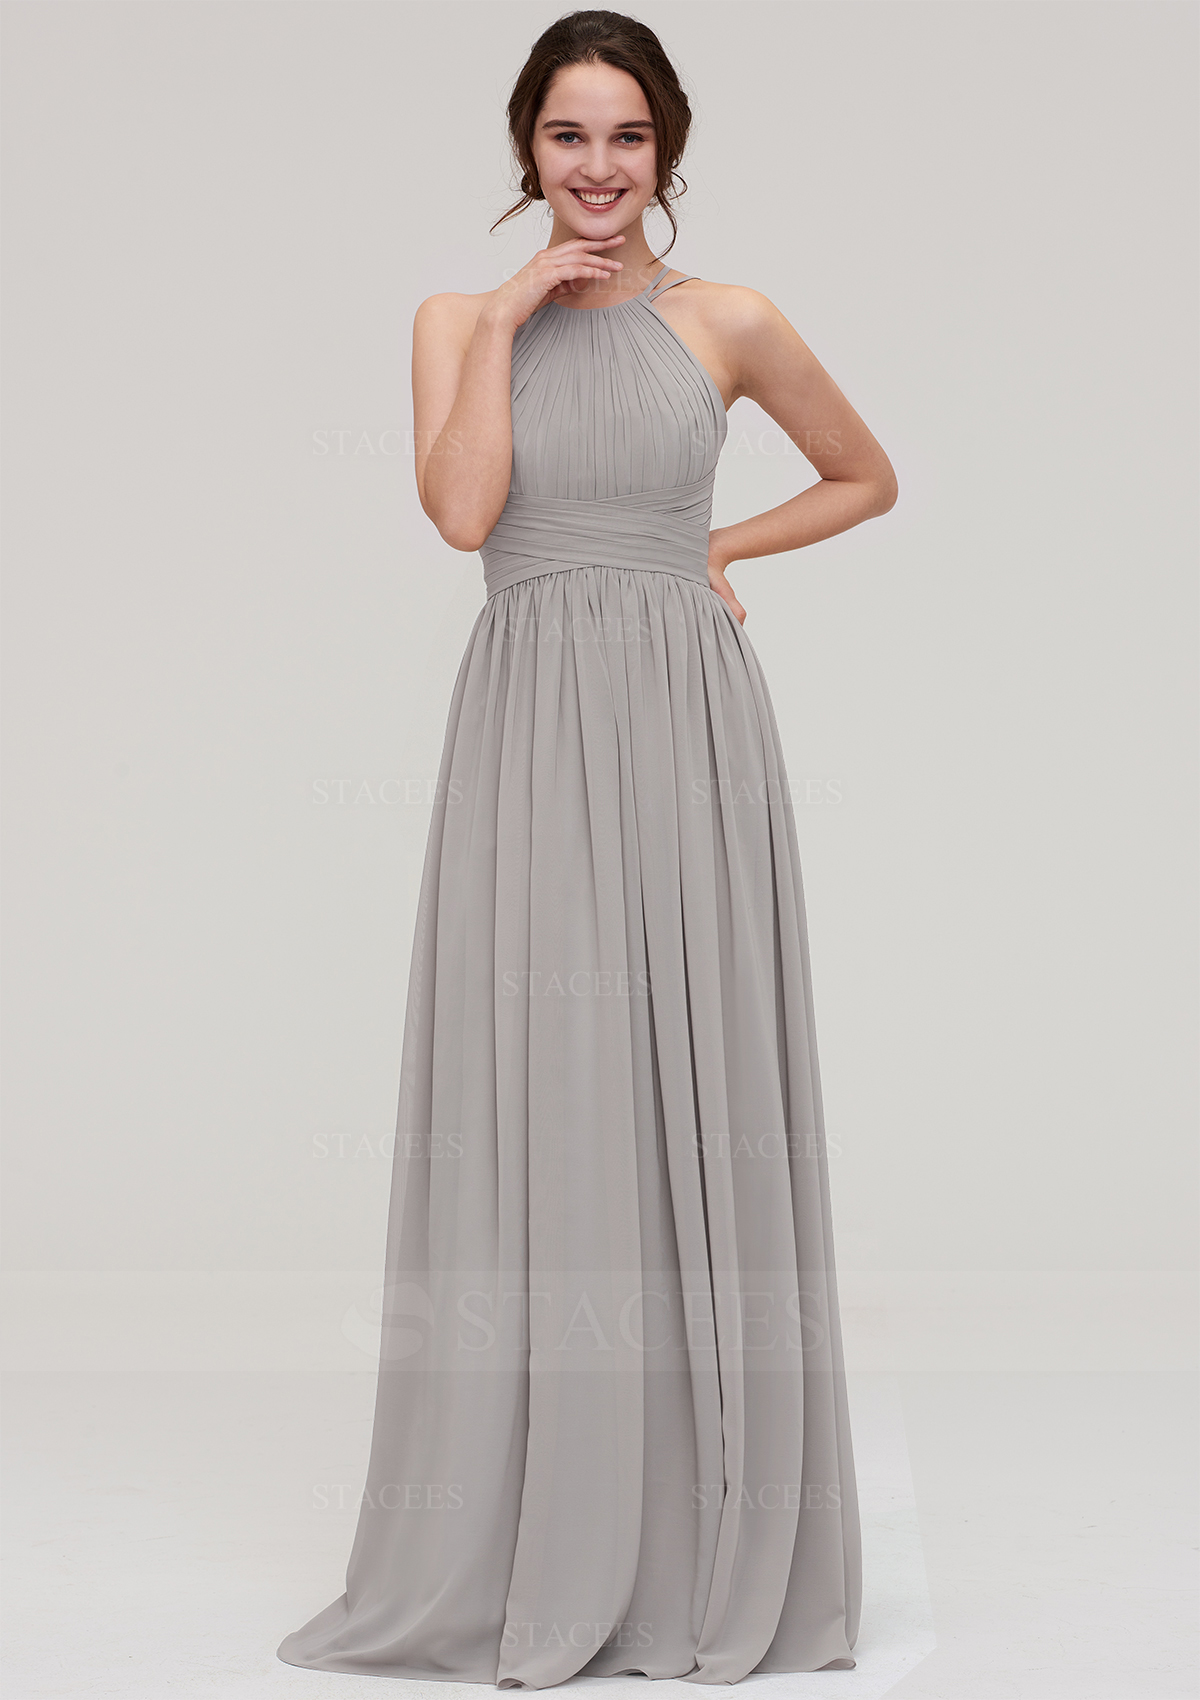 469c14a53c A-line/Princess Halter Sleeveless Long/Floor-Length Chiffon Bridesmaid Dress  With Pleated - Bridesmaid Dresses S18107B - at Stacees